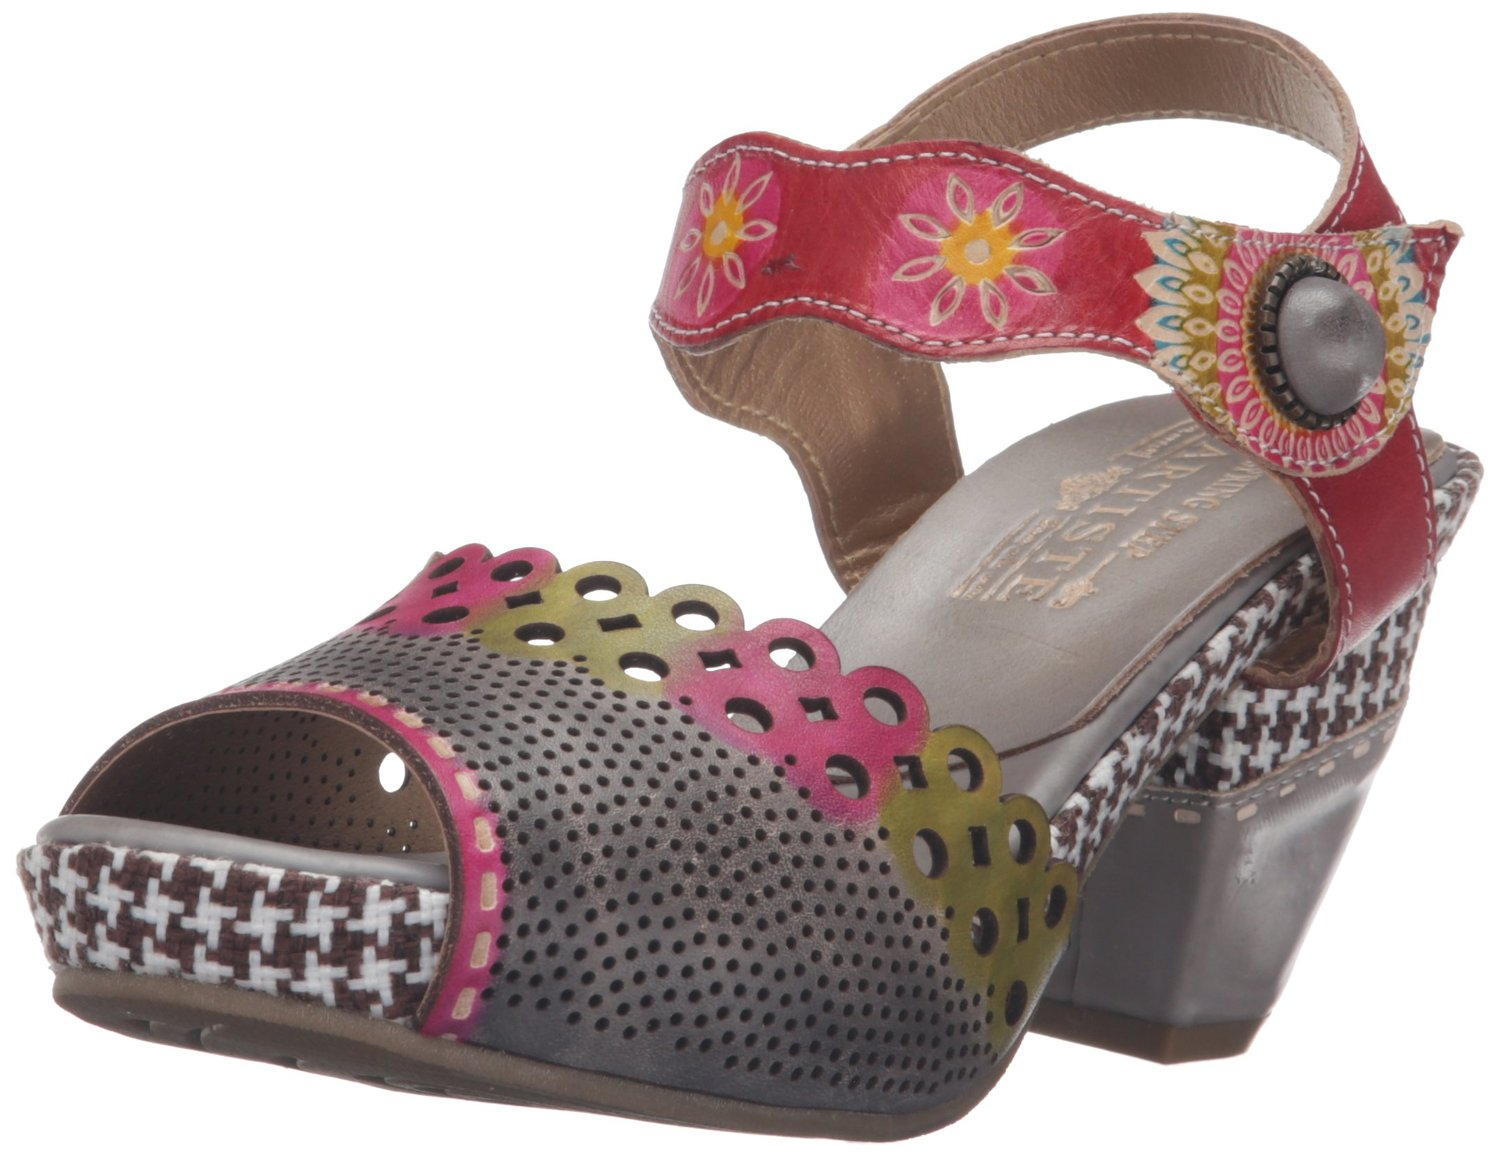 L'Artiste by Spring Step Women's Jive Flat Sandal by L'Artiste by Spring Step